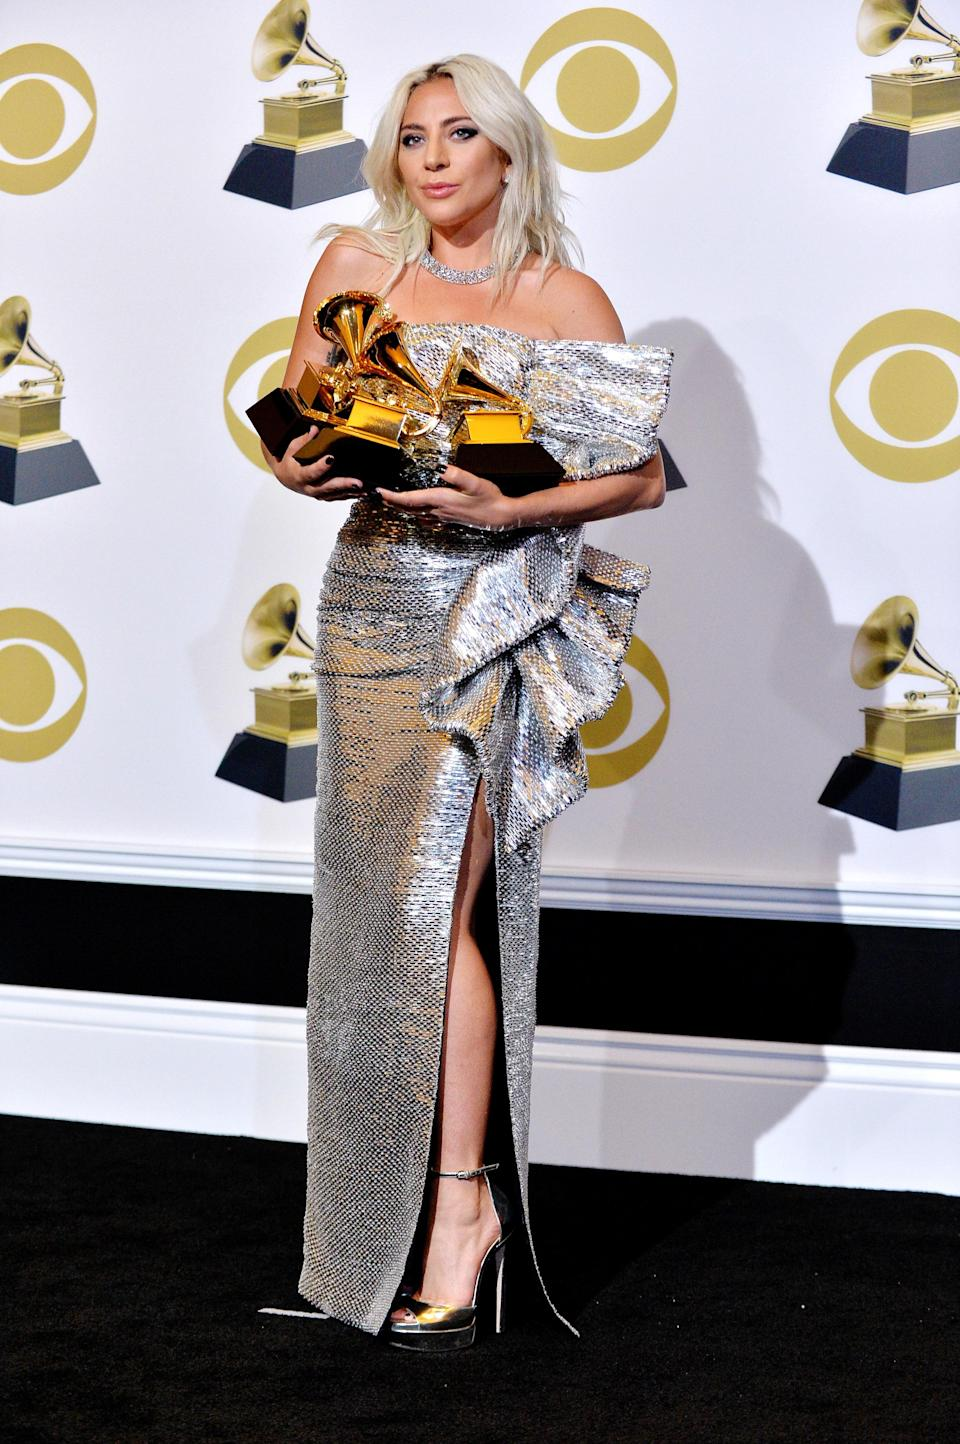 Grammys in hand, Lady Gaga showed the 2019 award show just how wide of a fashion range she truly has. Classic yet still fashion-forward with its shimmery metallic material, this dress is one of our red carpet favorites.